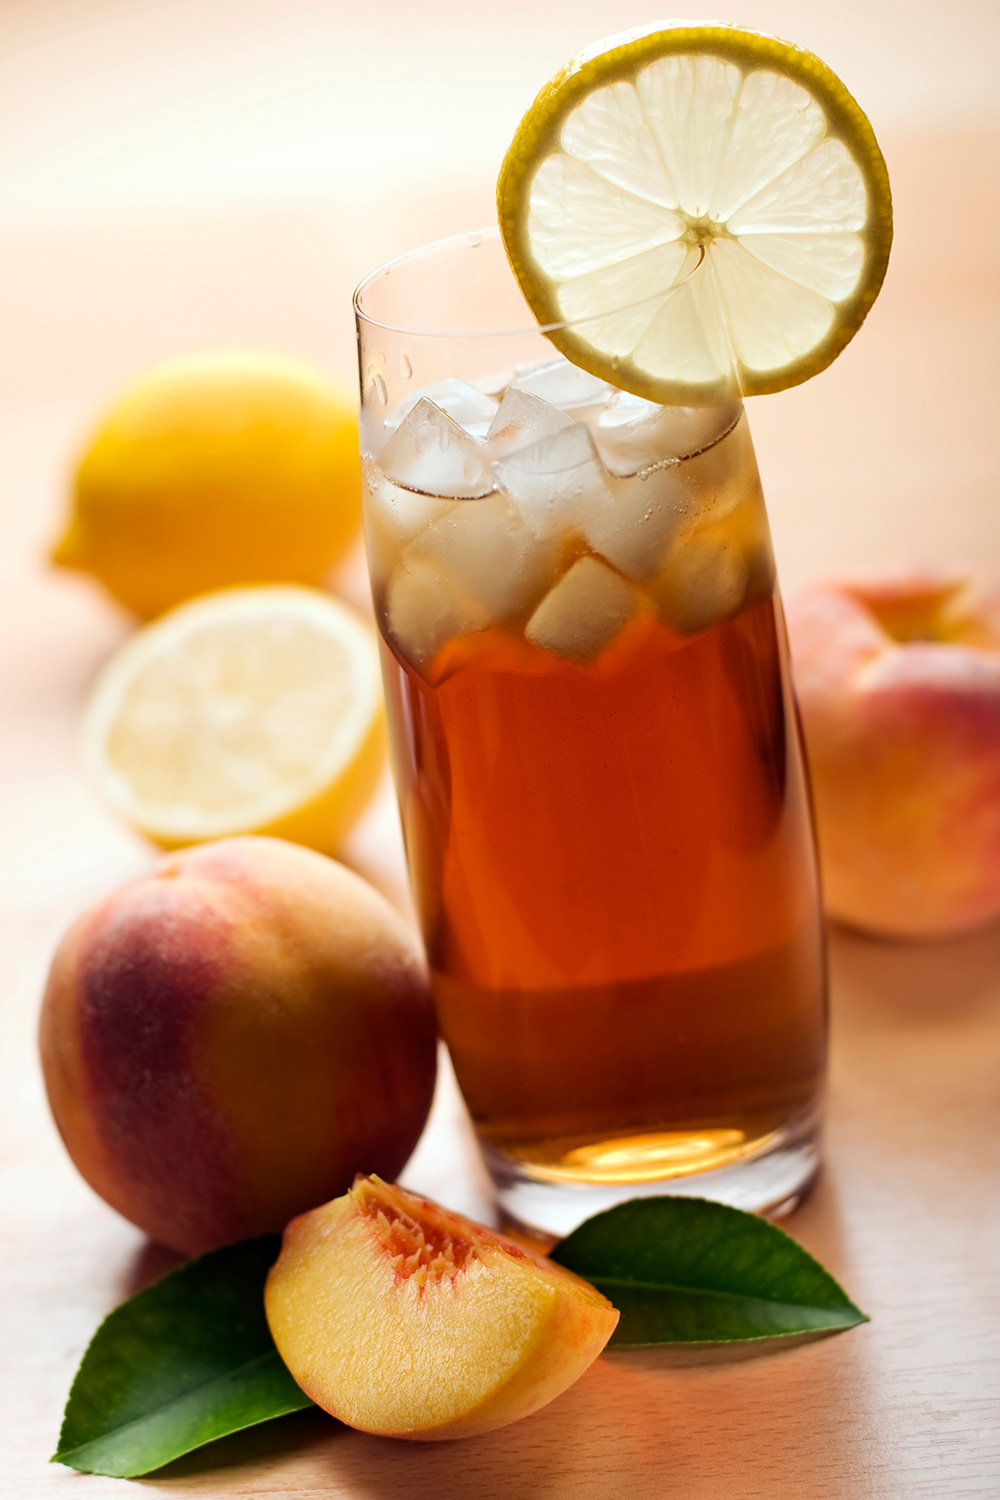 Sidel Fruit Drink Peach